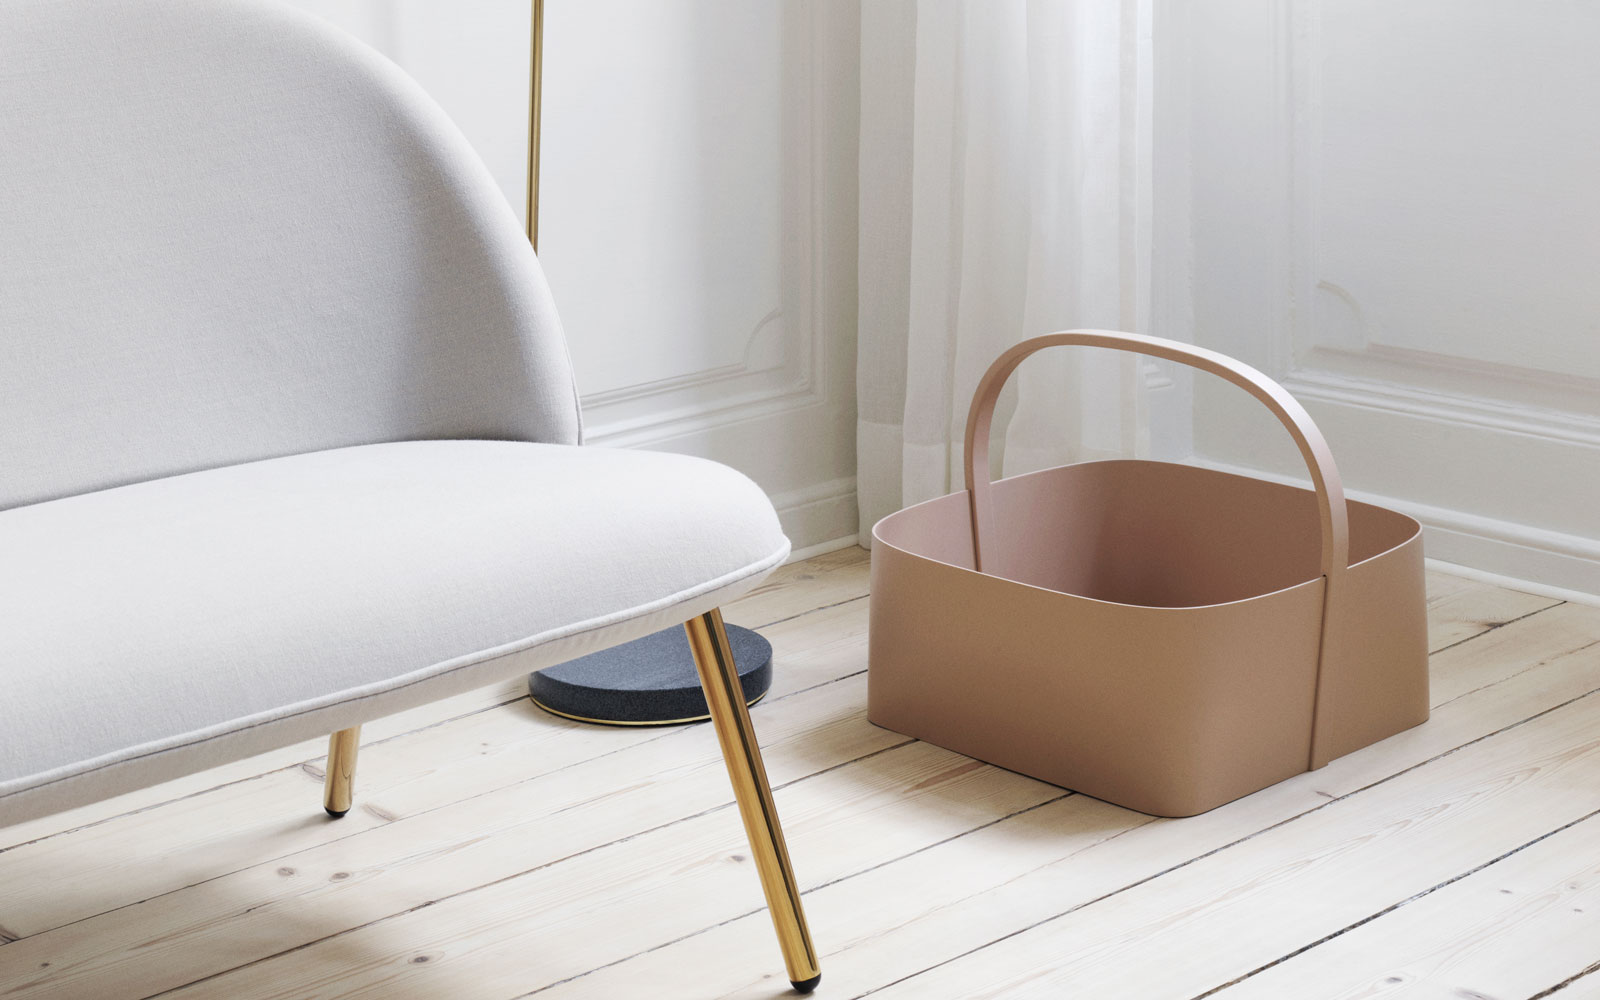 Shaker Basket - Product Fact Sheets - Normann Copenhagen